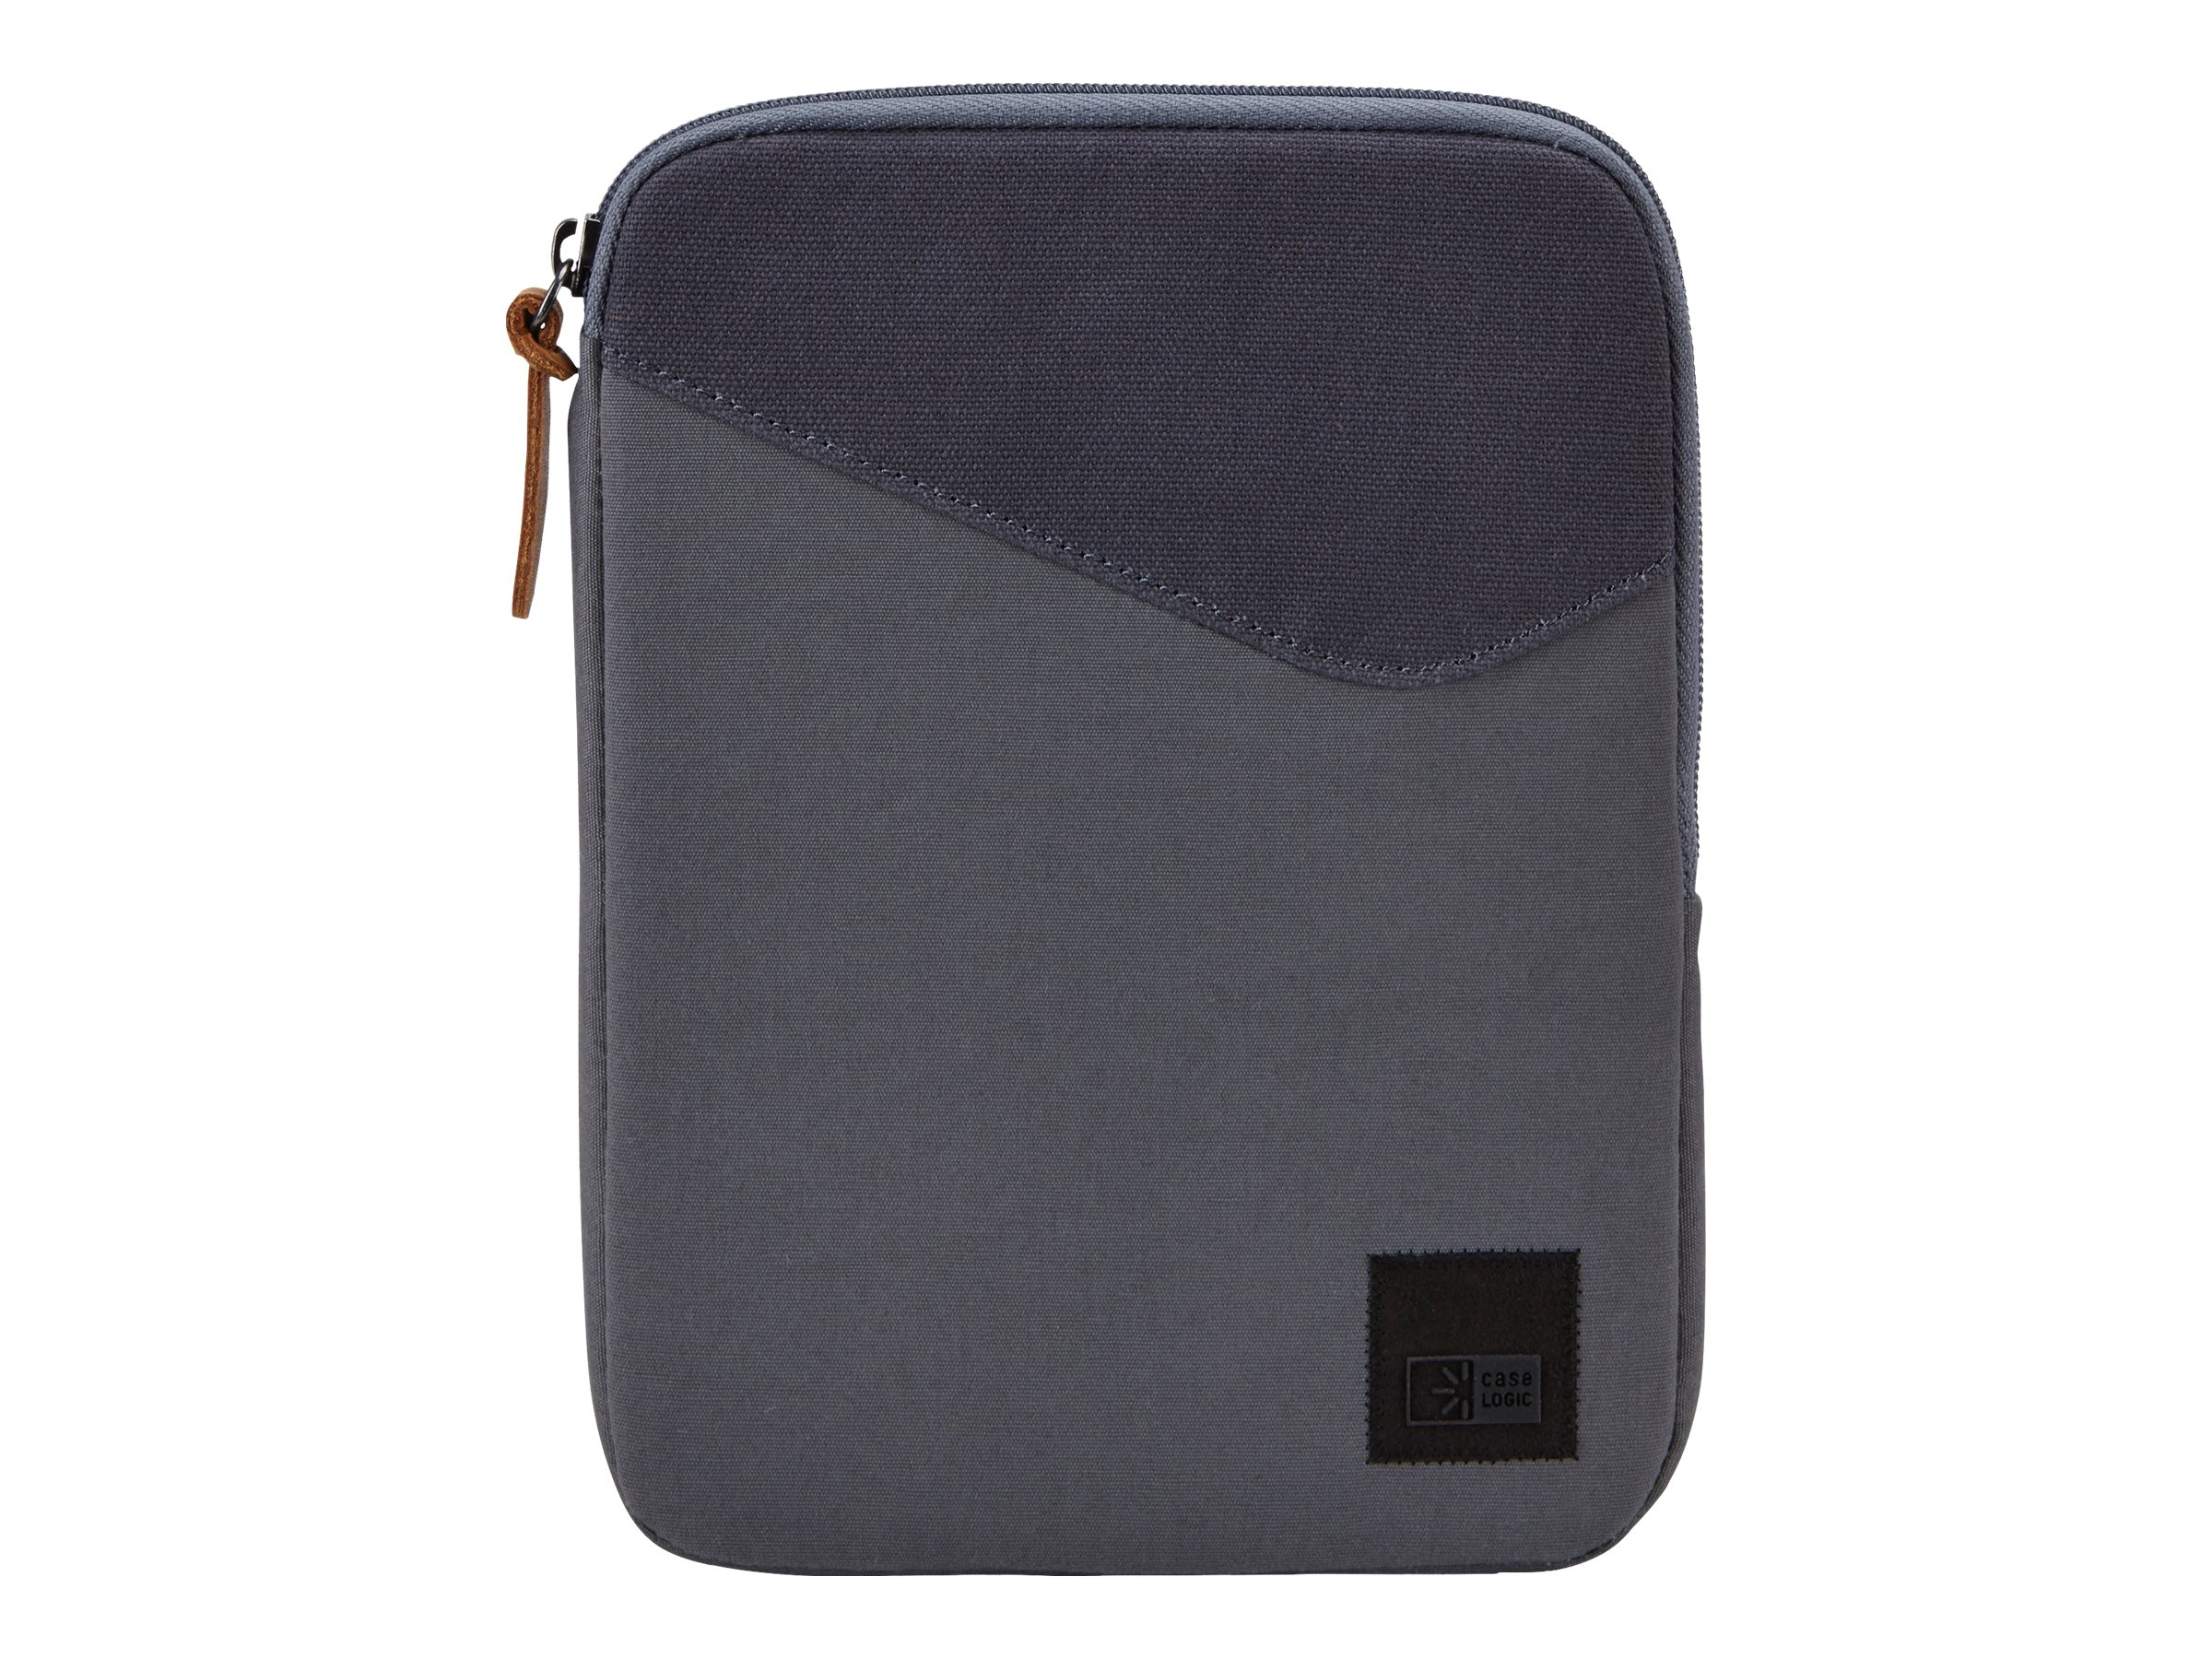 Case Logic LoDo 8 Laptop Sleeve, Graphite, LODS108GRAPHITE, 30639340, Carrying Cases - Notebook